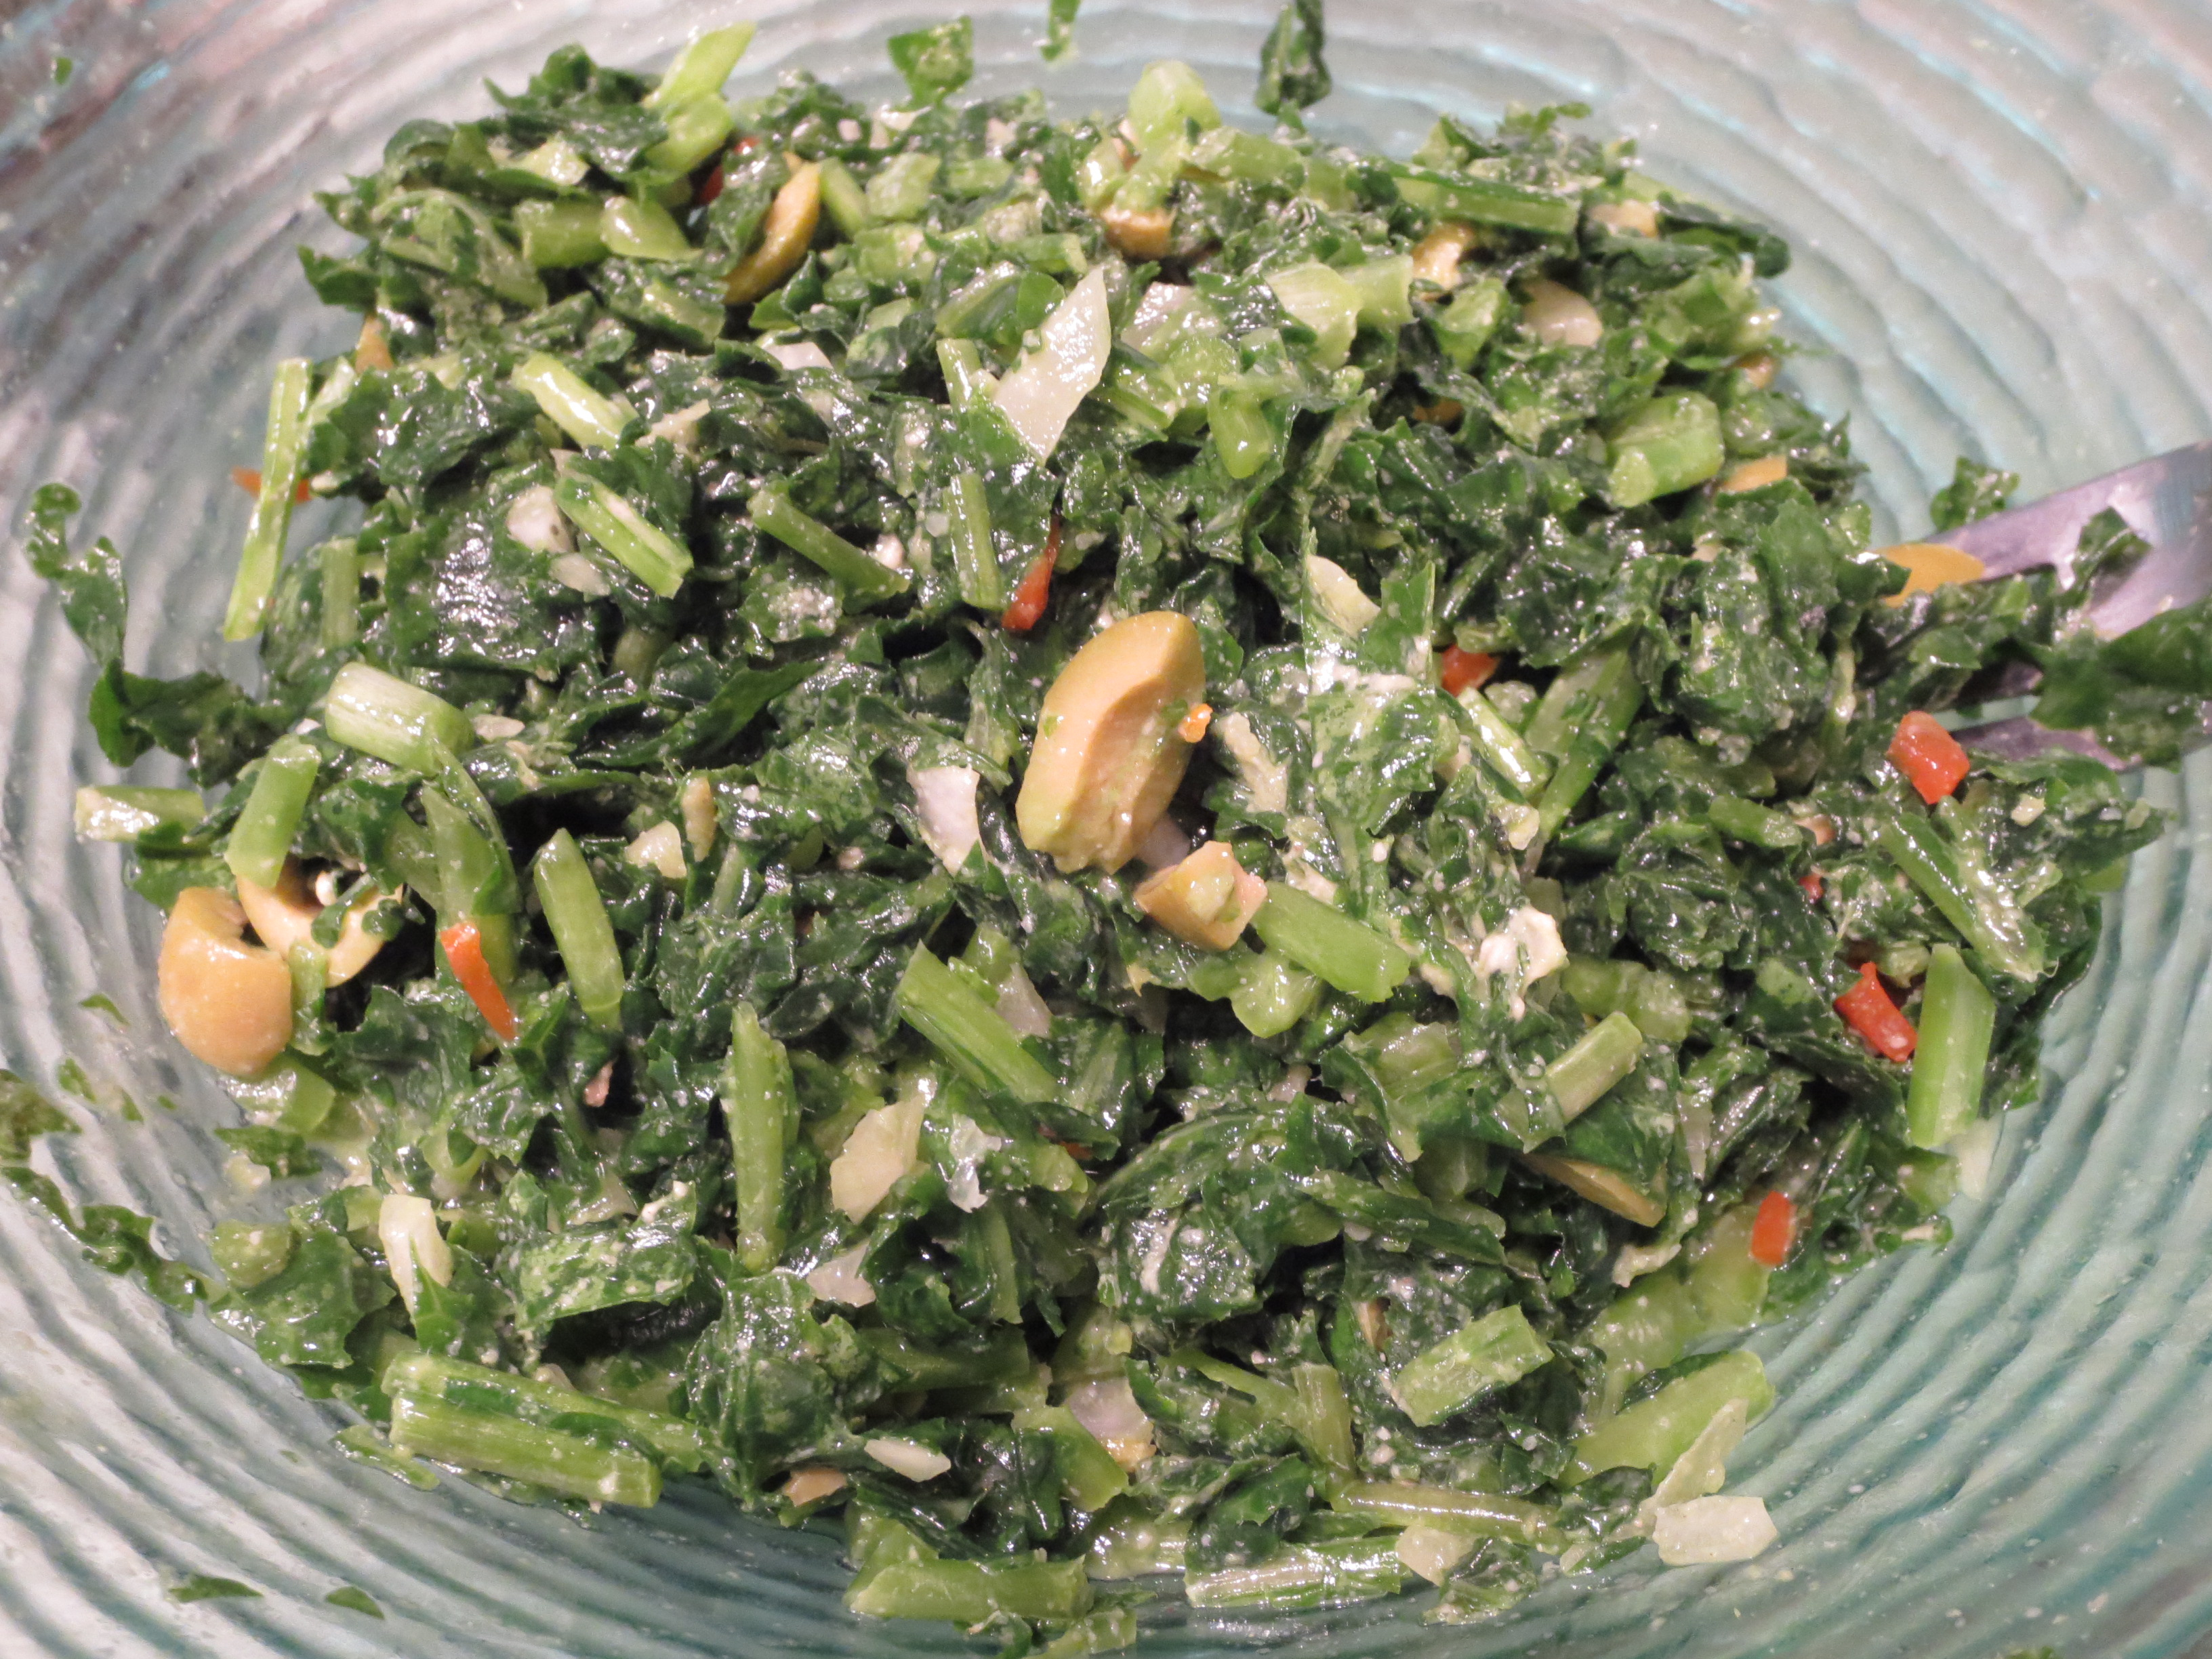 Homegrown massaged kale salad.